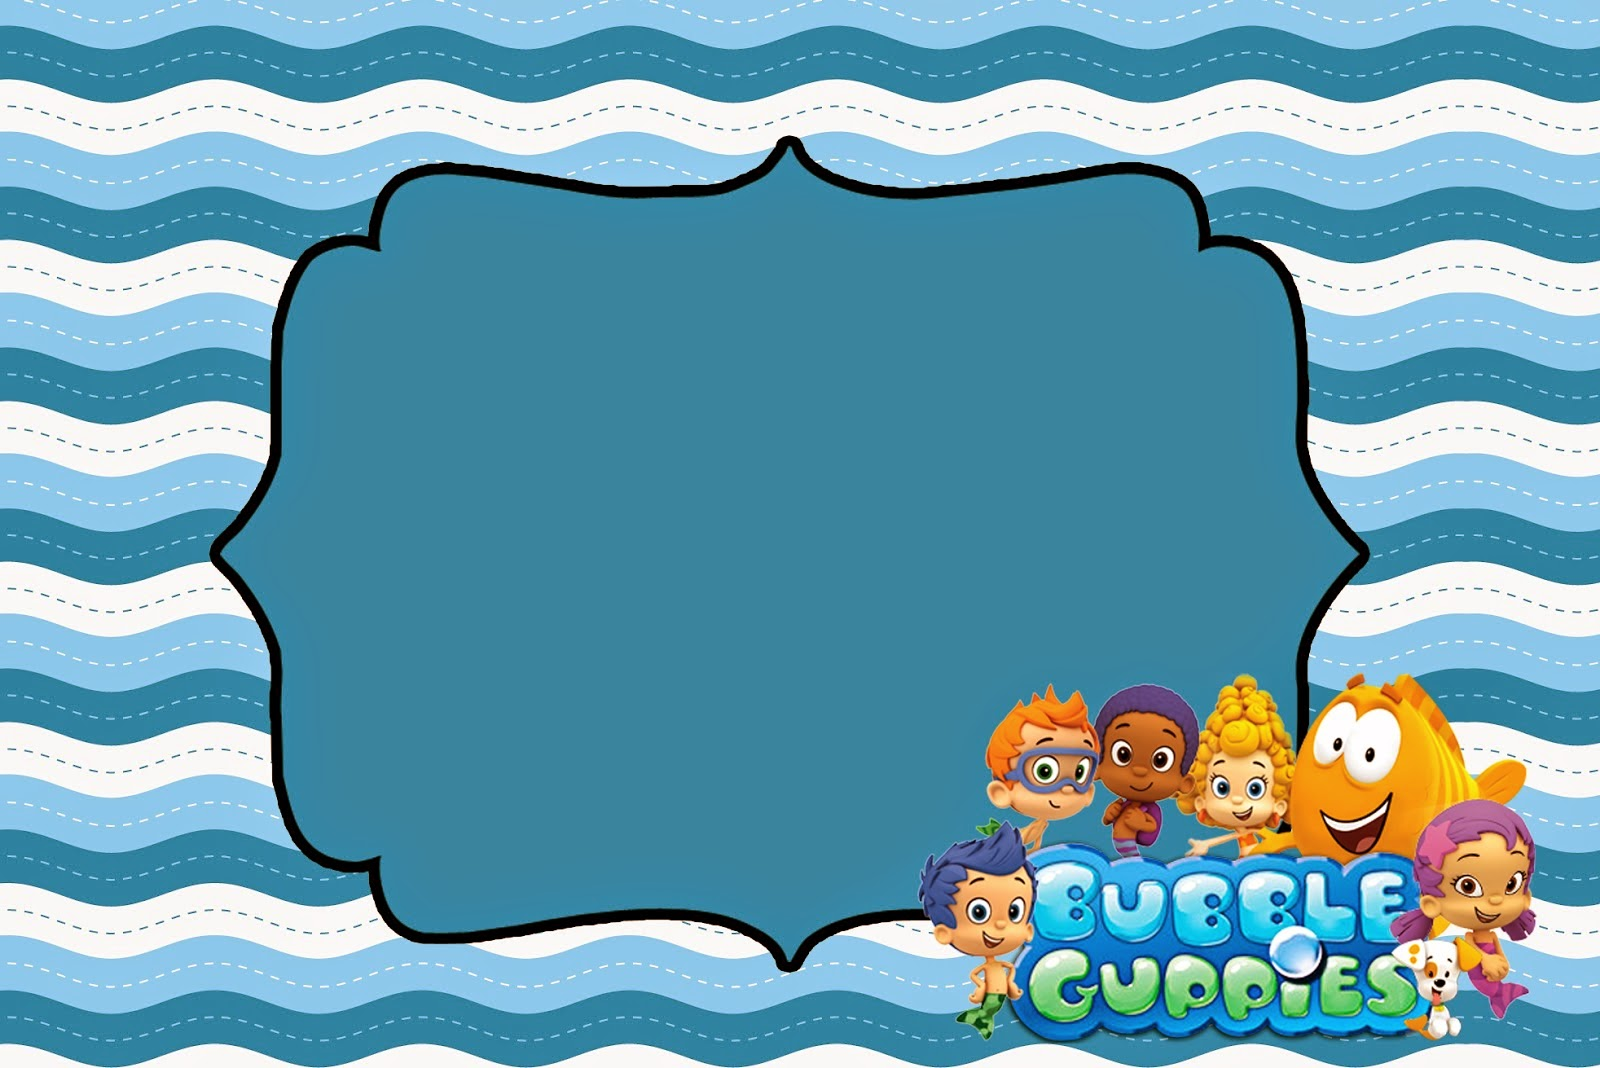 1600x1068 Bubble Guppies Free Printable Invitations. Oh My Fiesta! In English